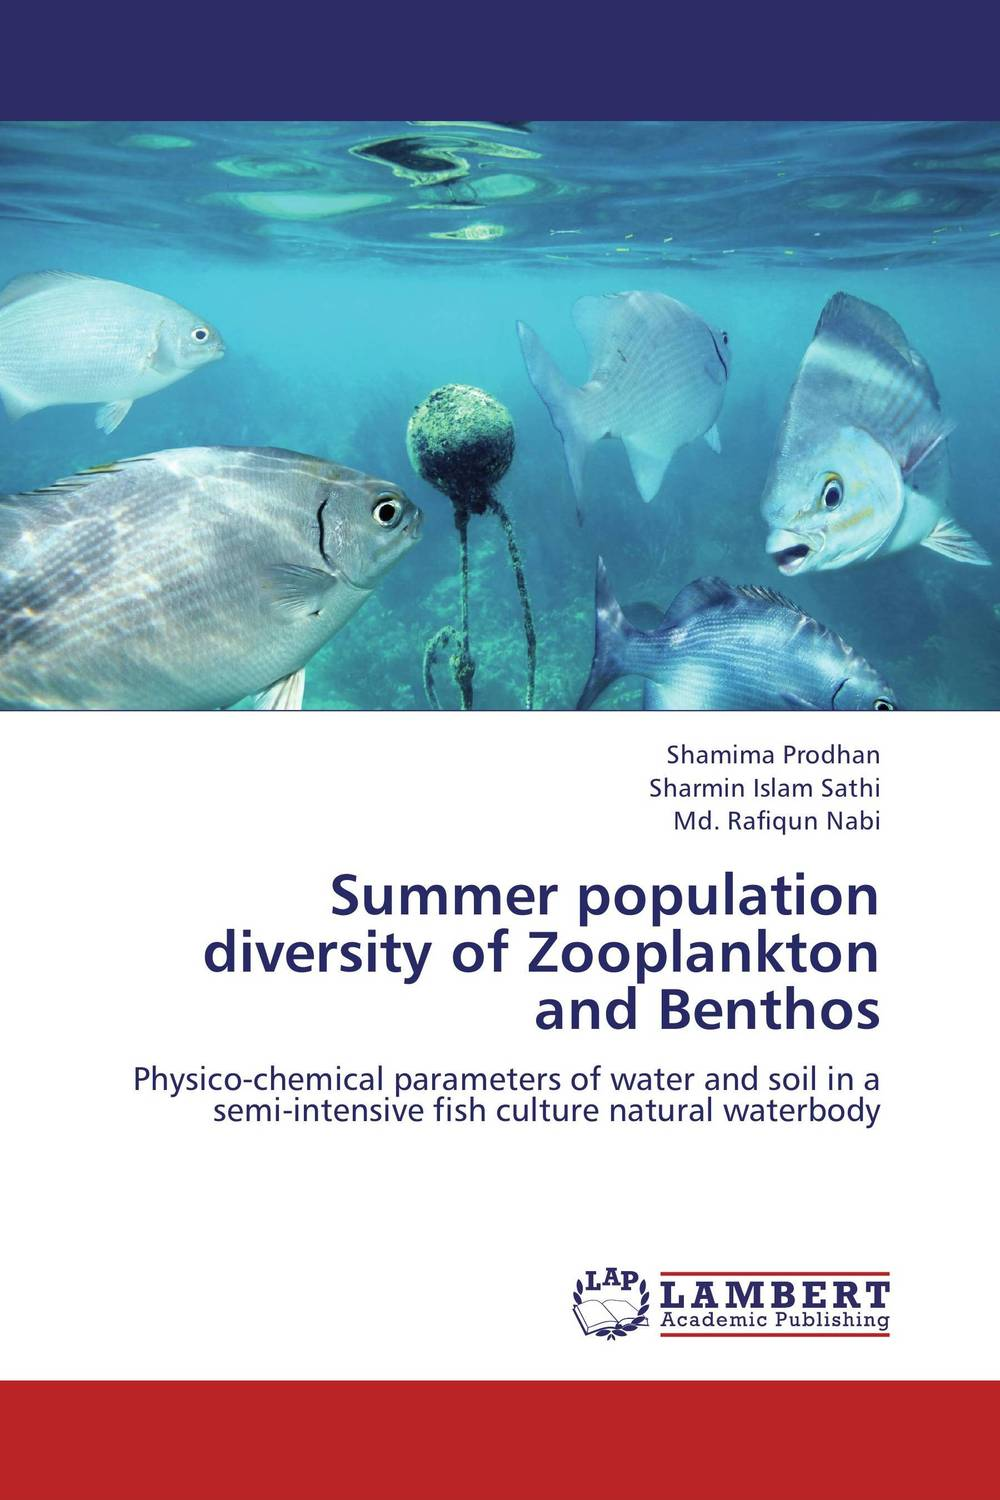 Summer population diversity of Zooplankton and Benthos fish and plankton population of batticaloa lagoon sri lanka